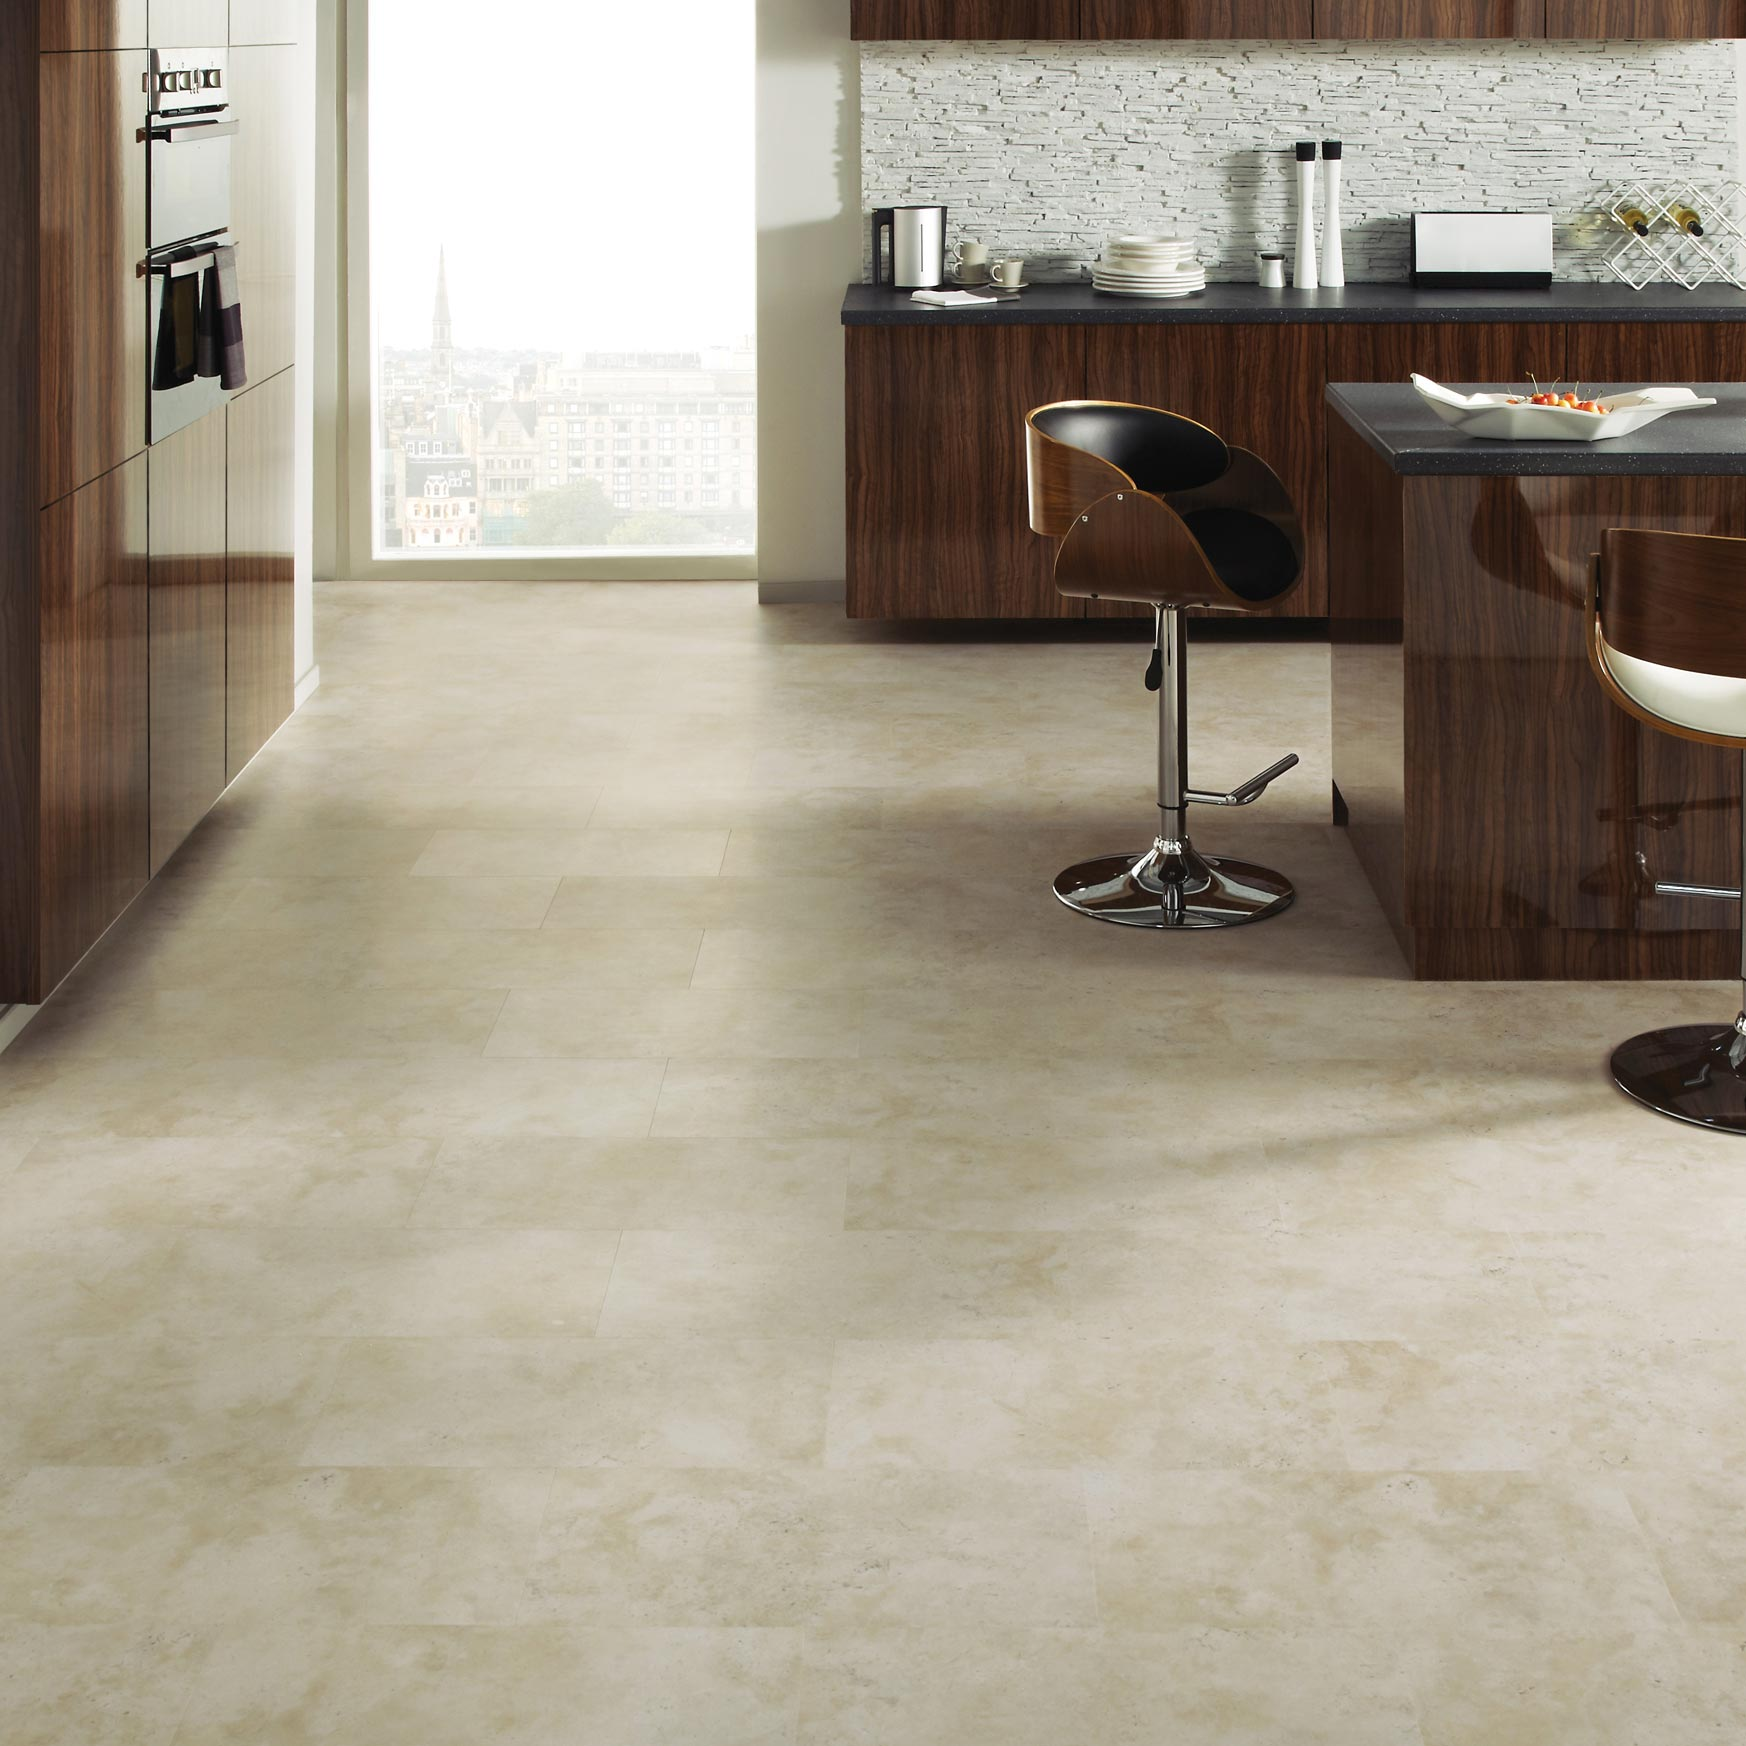 Karndean palio murlo ct4302 clic vinyl tile factory direct flooring - Vinyl deck tiles ...